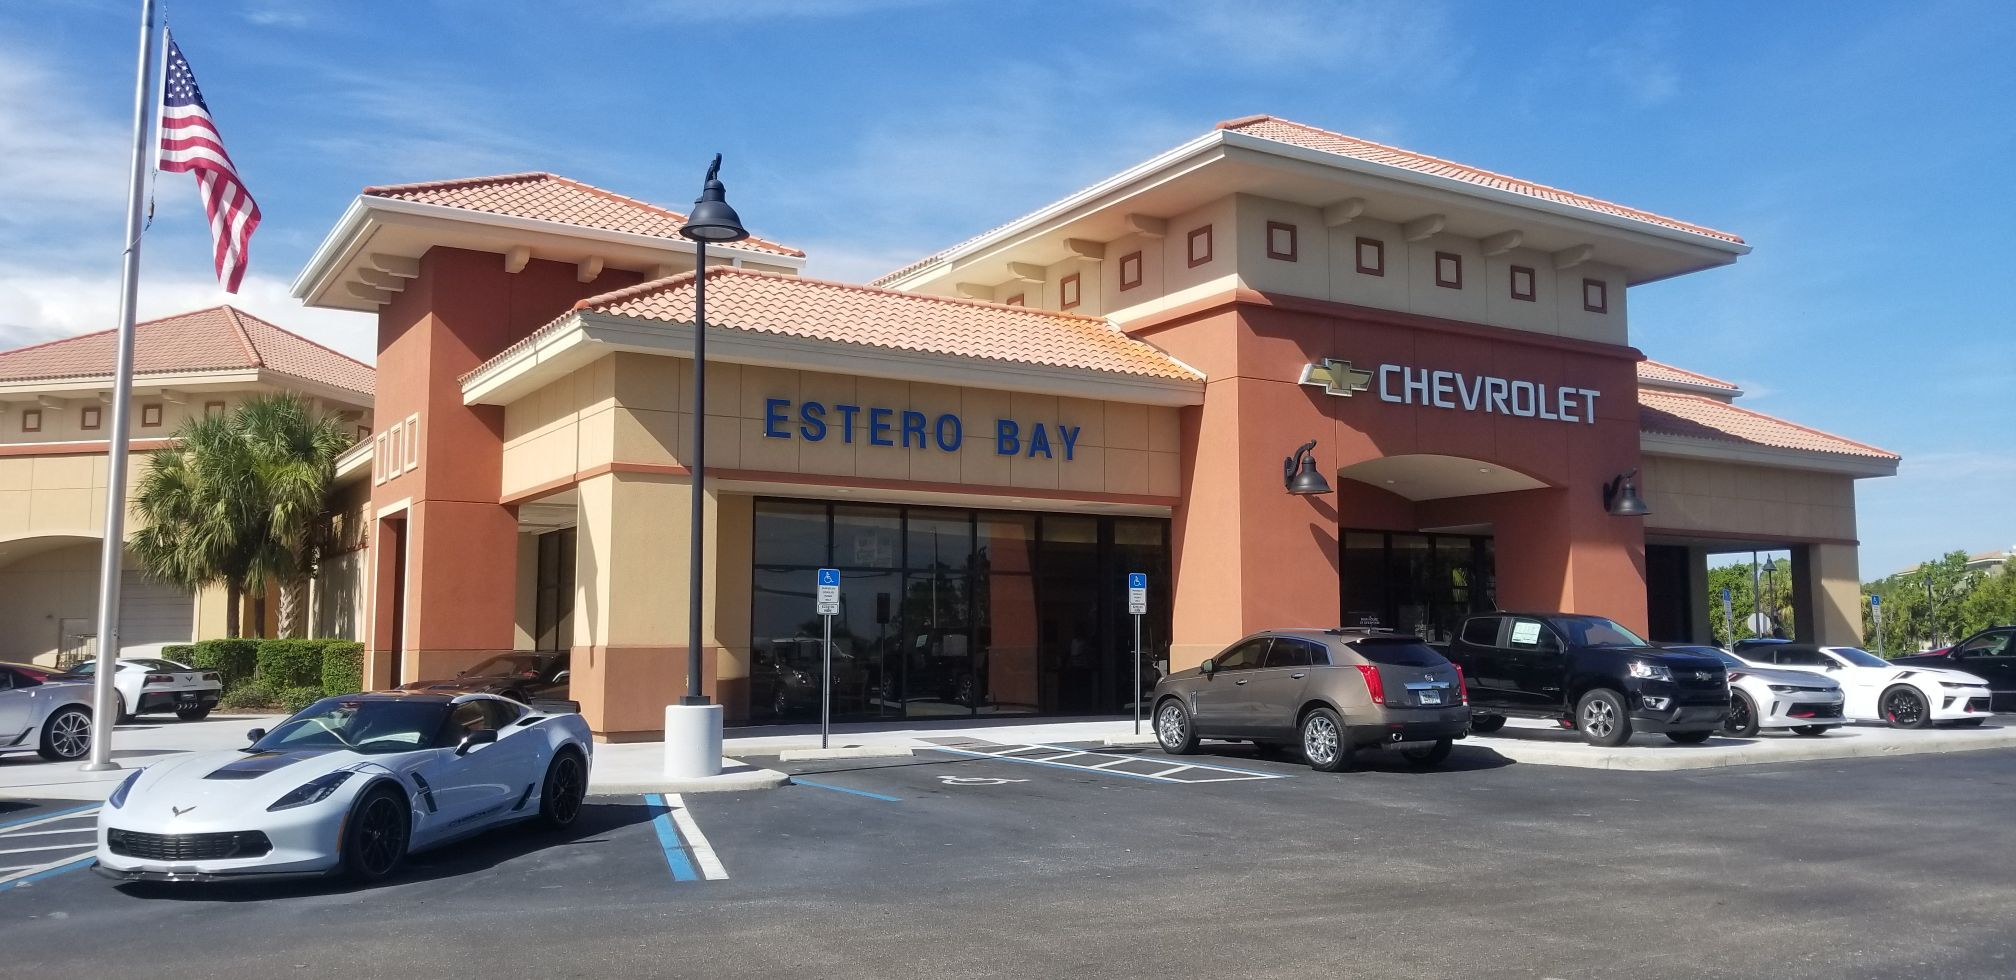 What A Beautiful Amazing Dealership In Estero Bay Fl Chevy